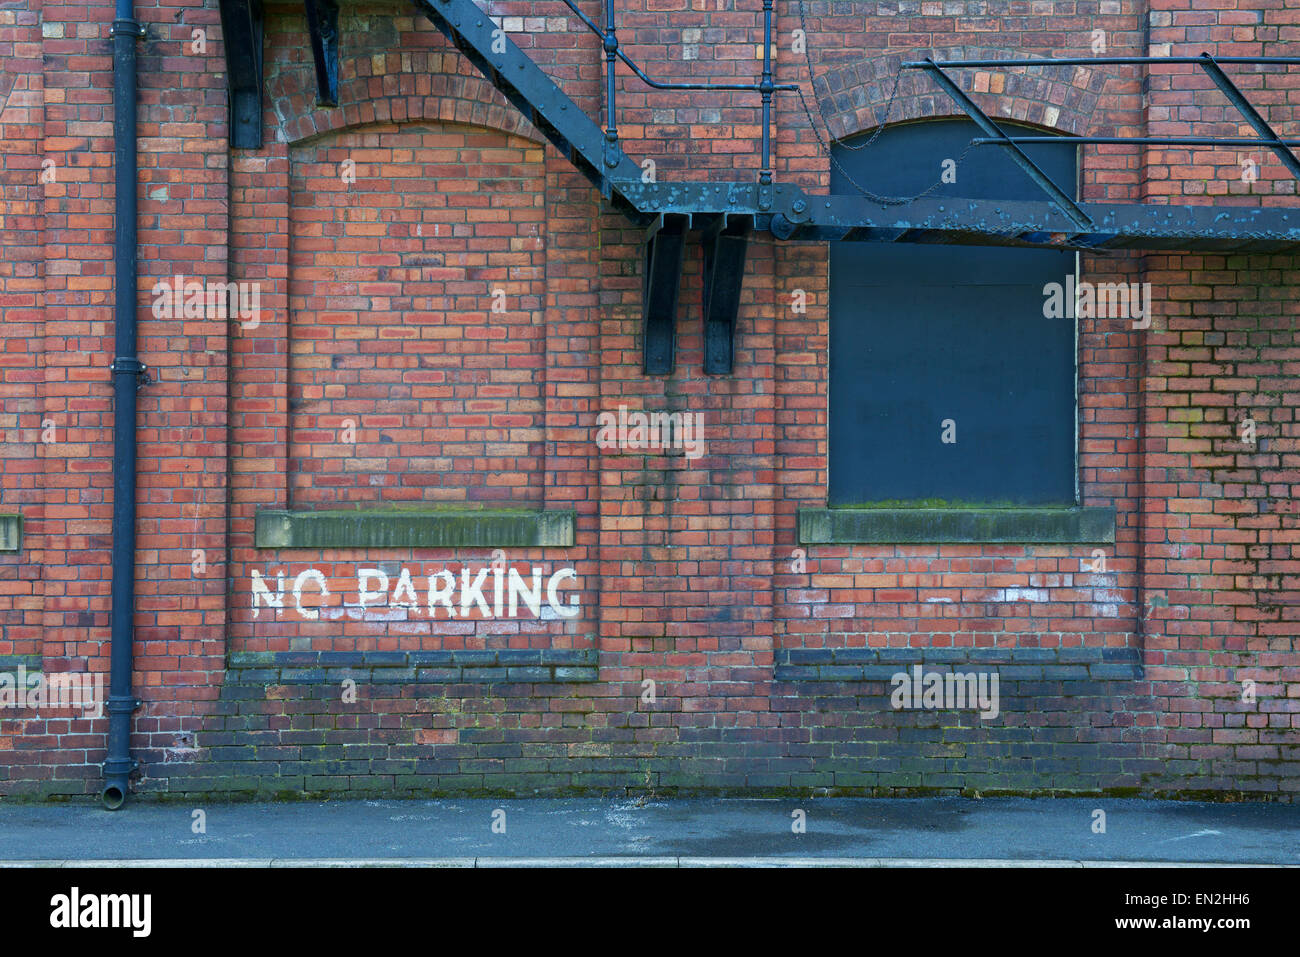 No parking sign on industrial brickwork building, - Stock Image